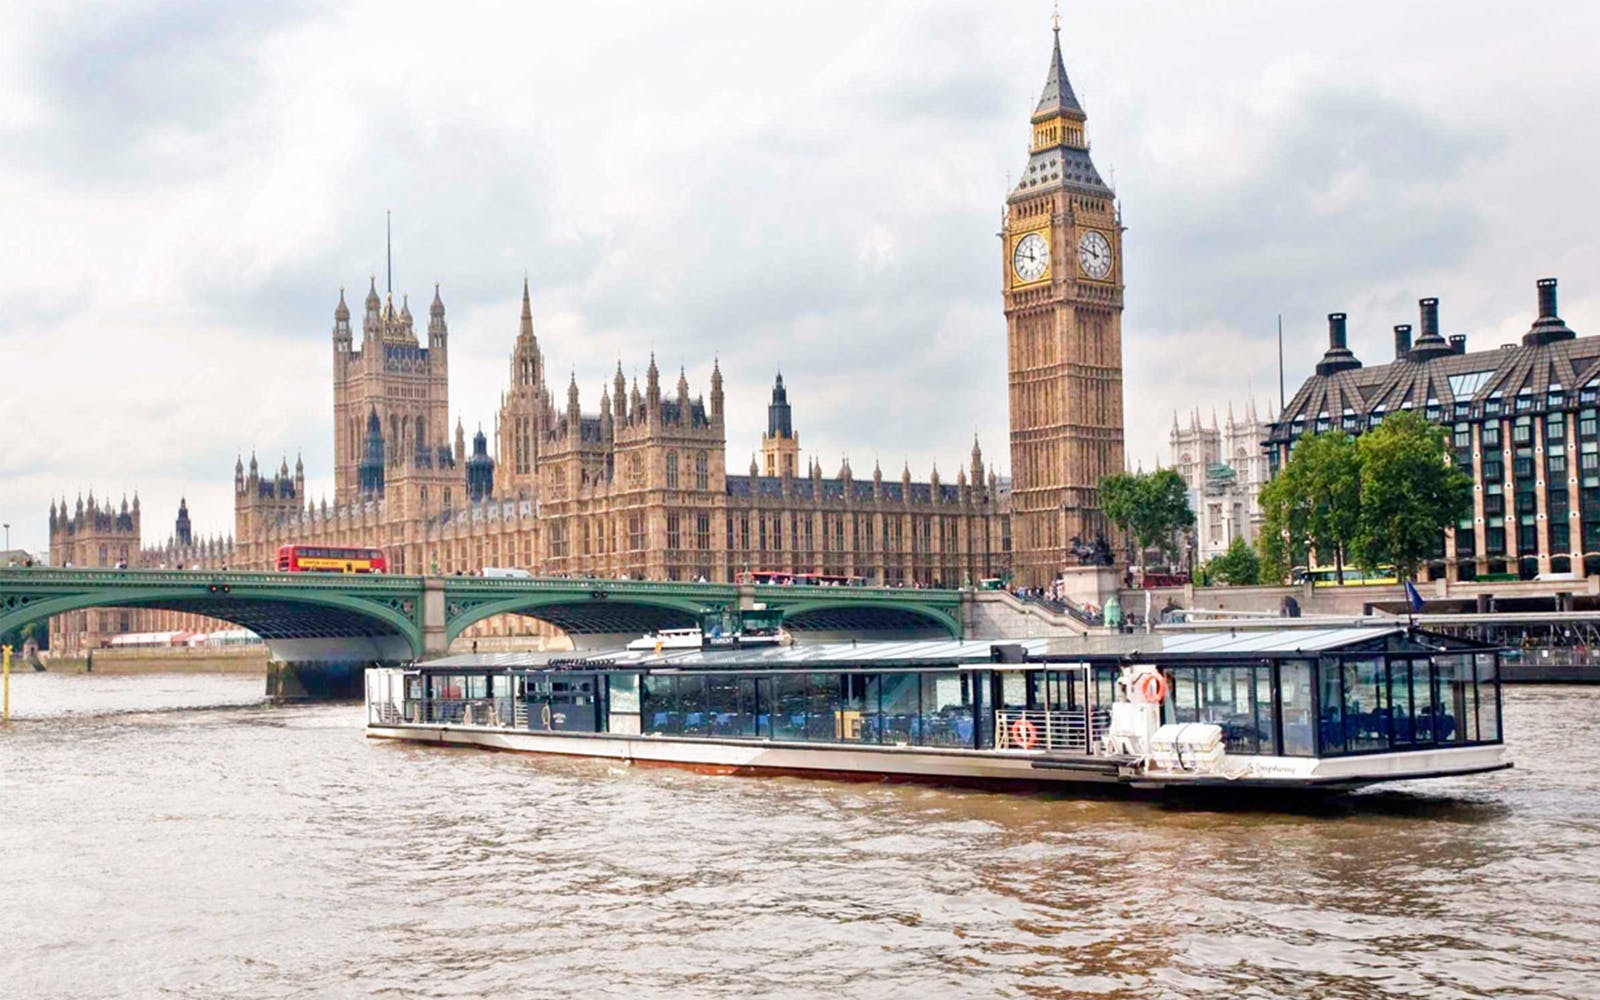 Bateaux London: Lunch Cruise on The Thames